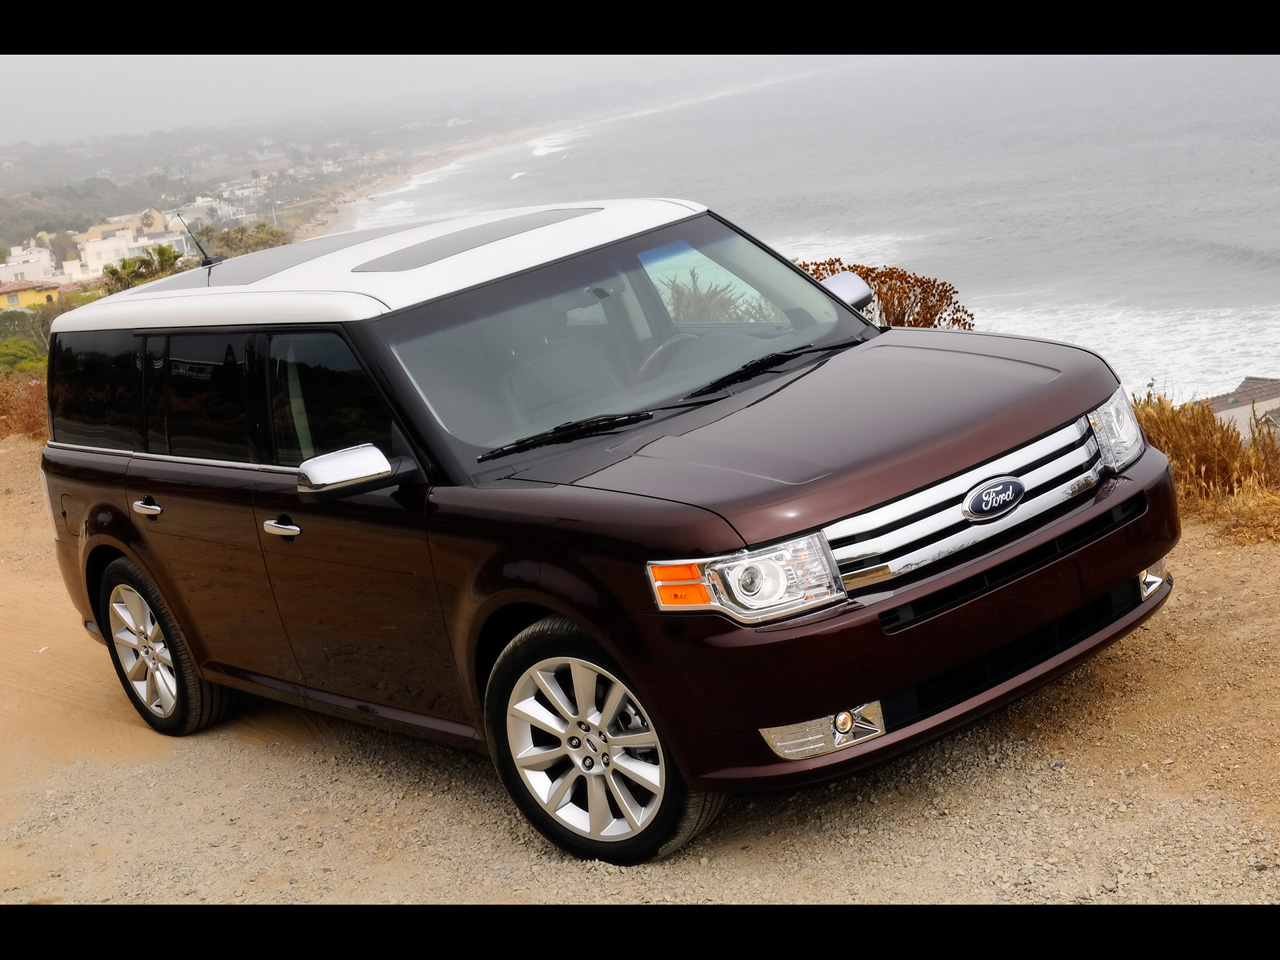 Ford flex 2009 photo - 4